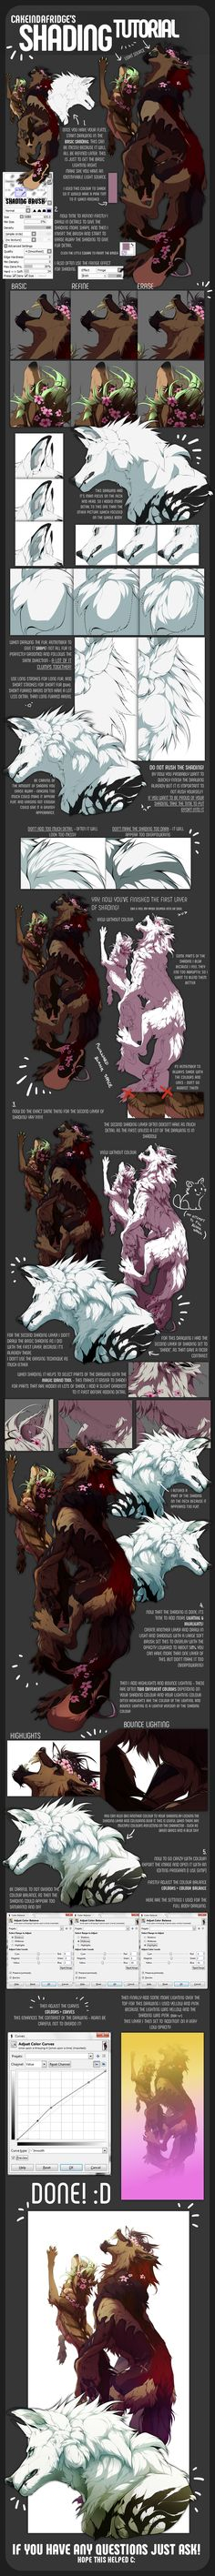 tutorial|SHADING by Cakeindafridge on DeviantArt